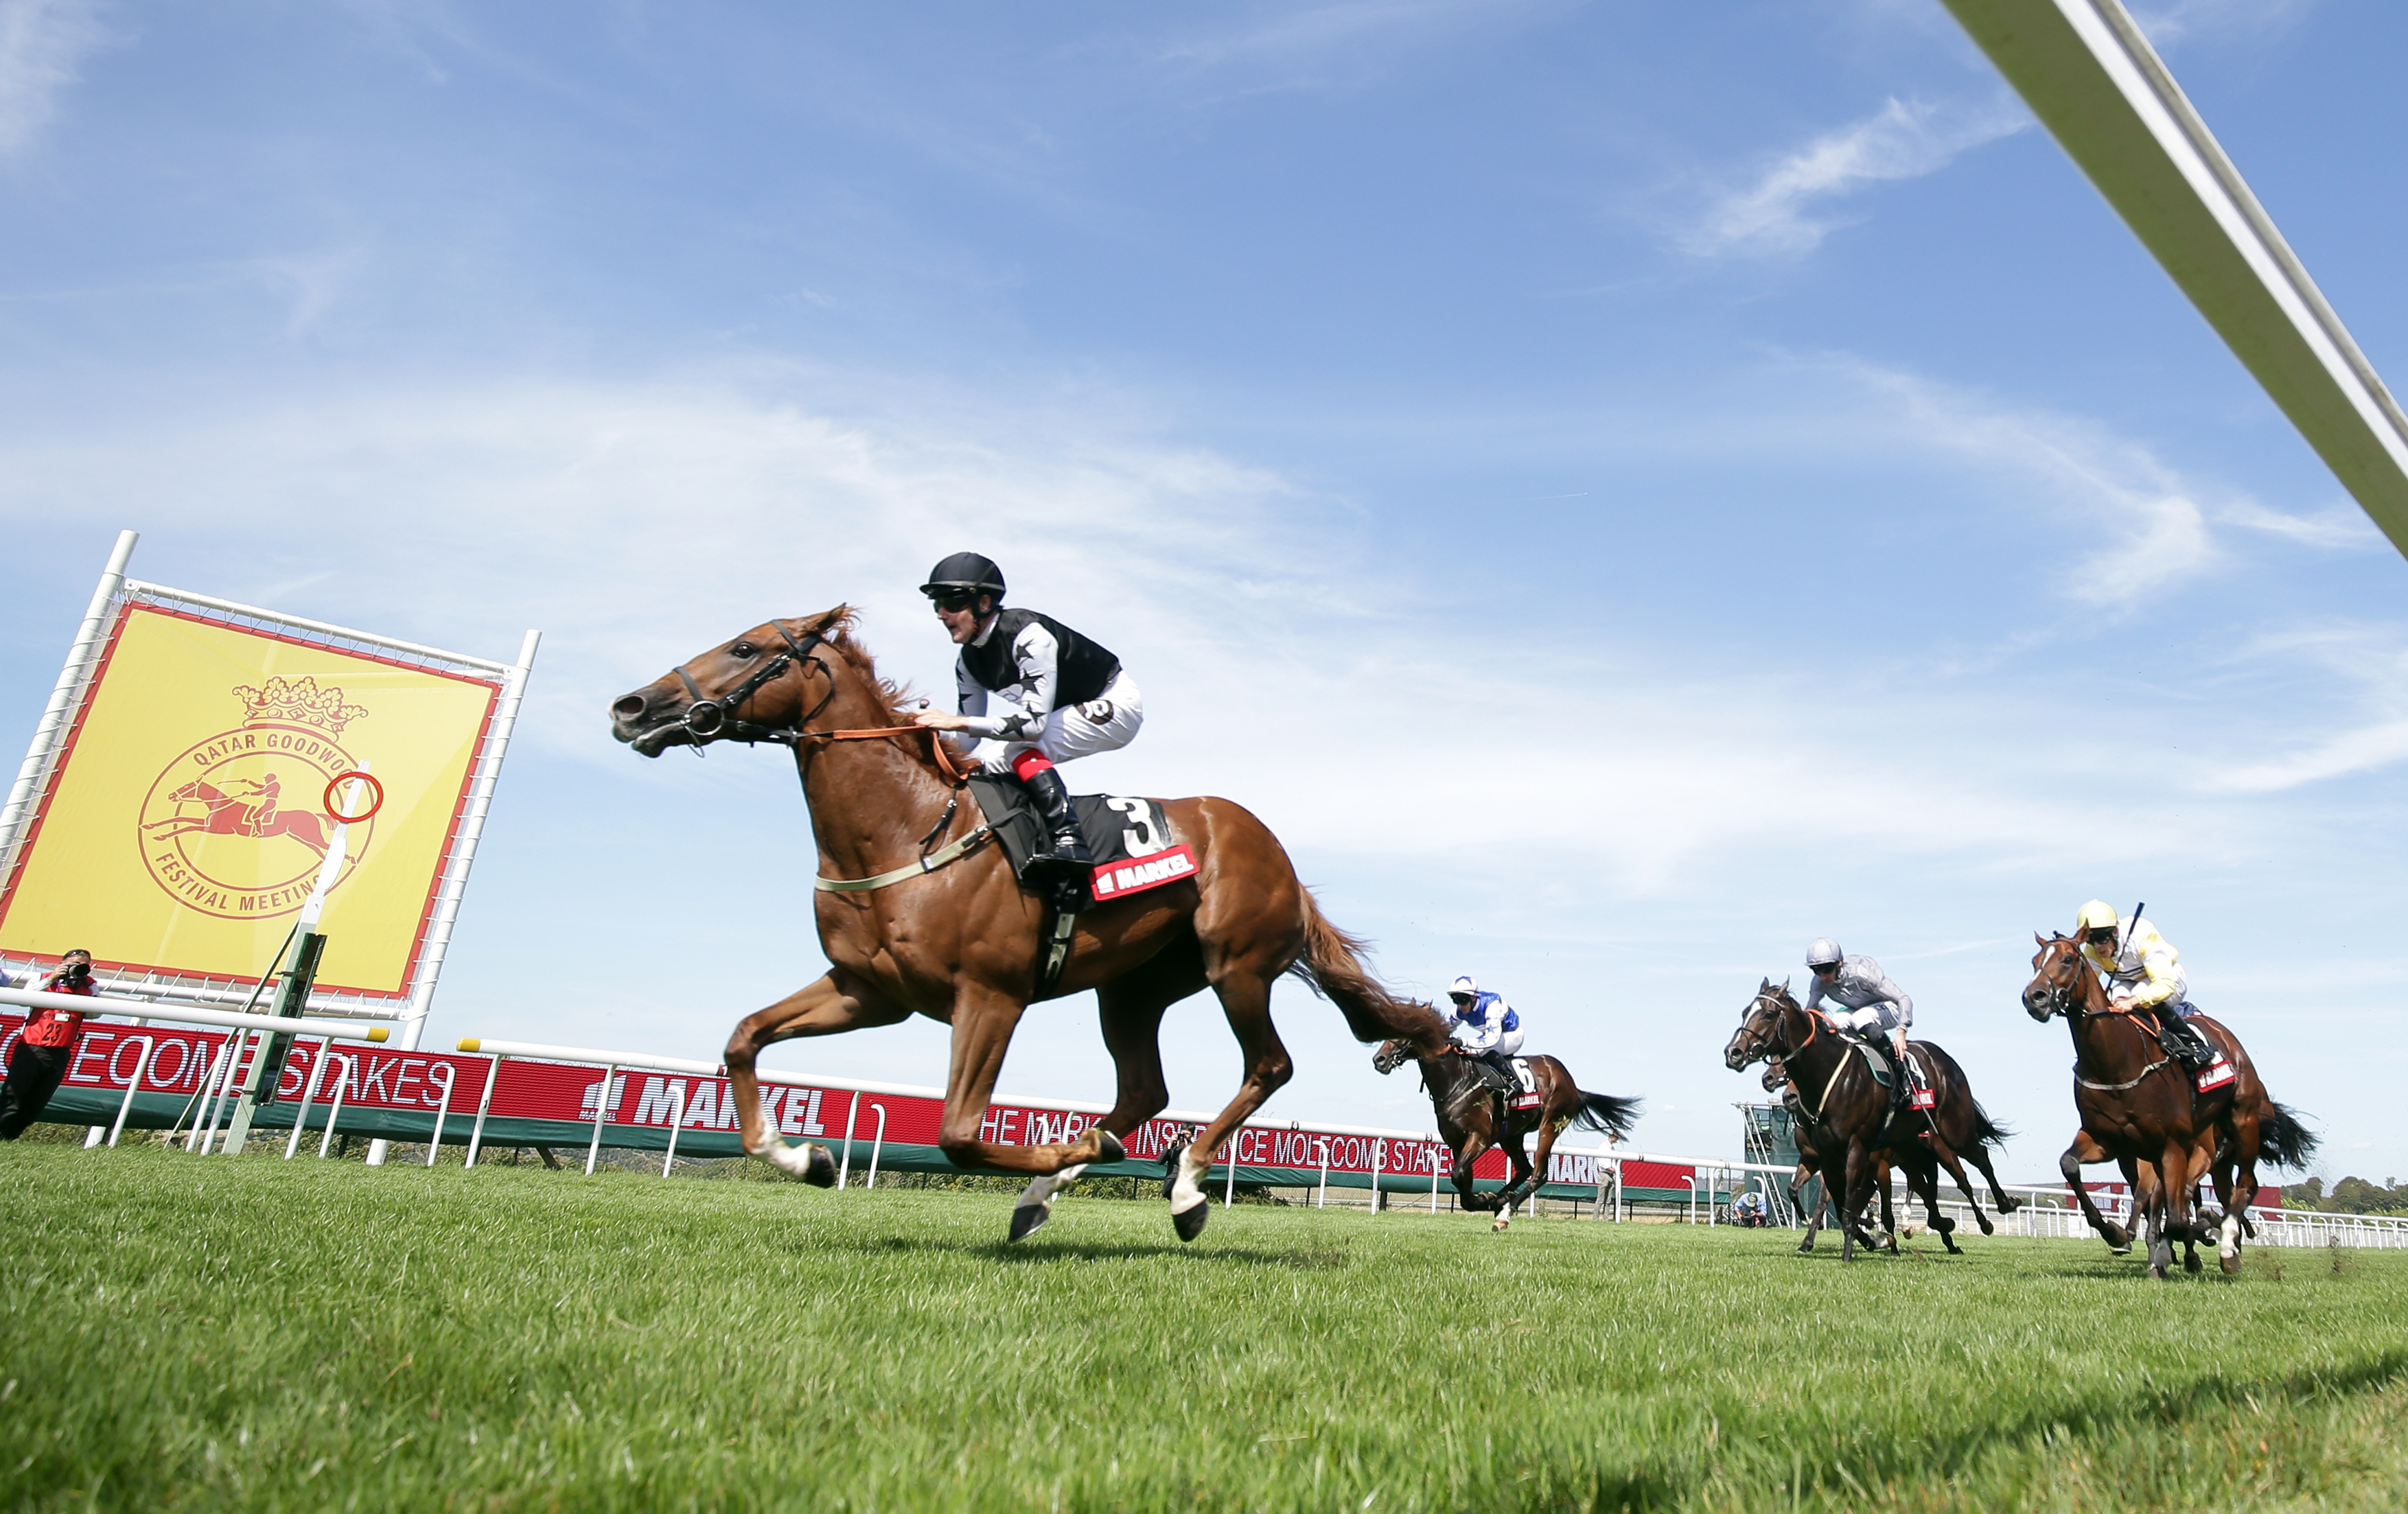 Rumble Inthejungle is seeking to return to the form he showed at Glorious Goodwood